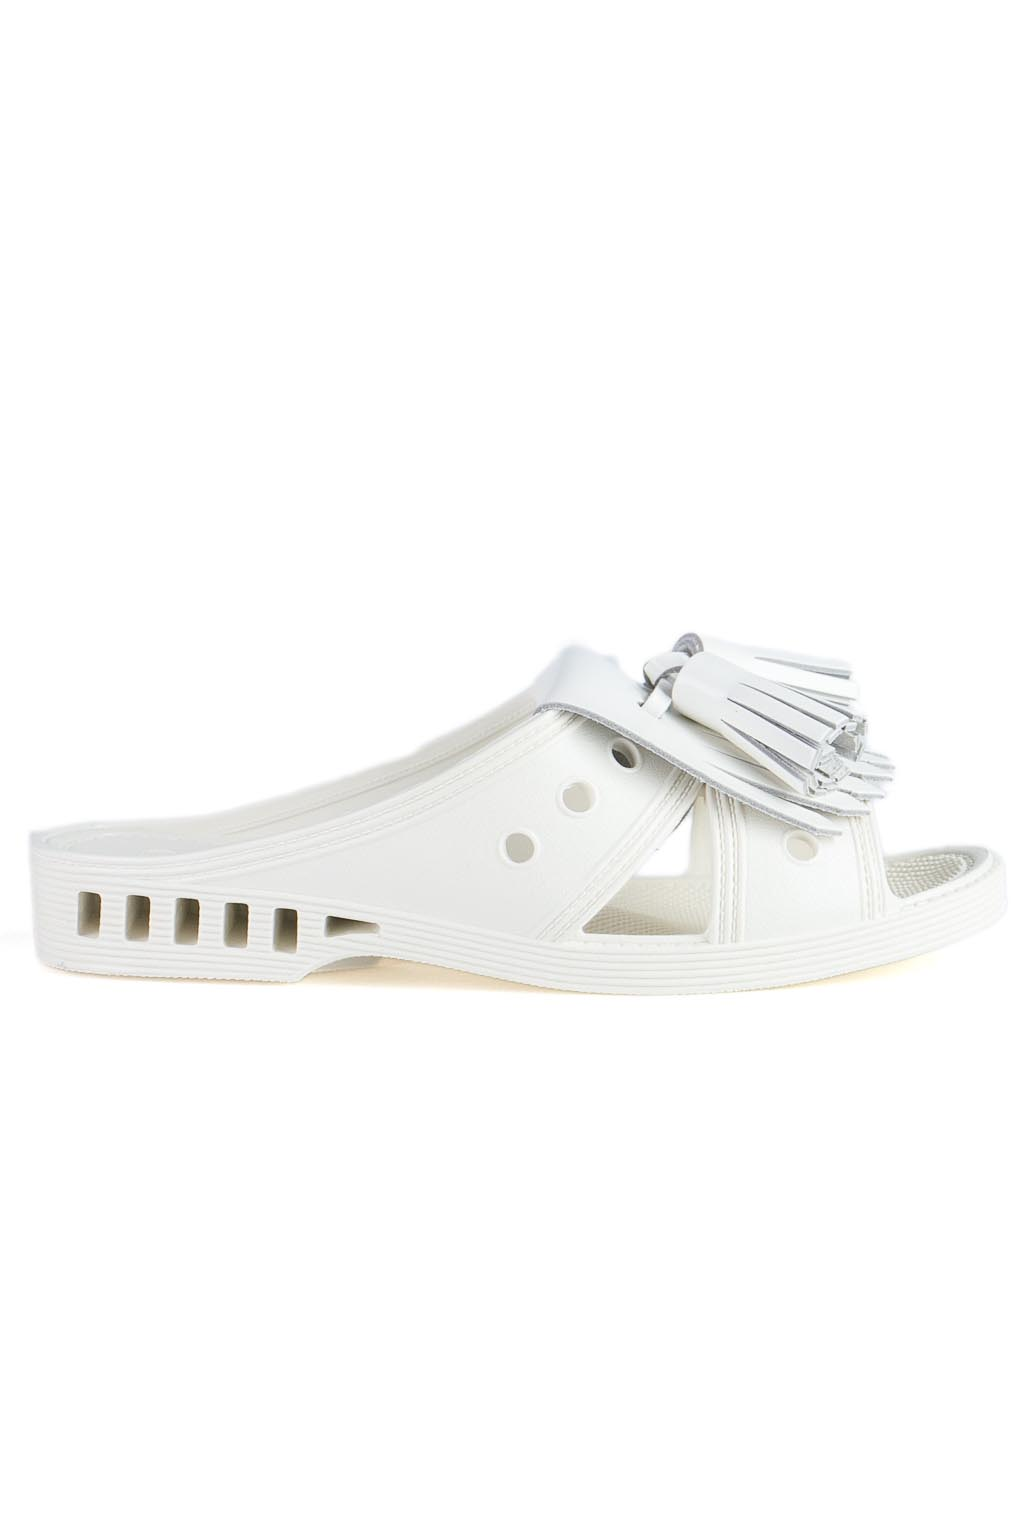 Bench Japan Bensan-Tassel  - White